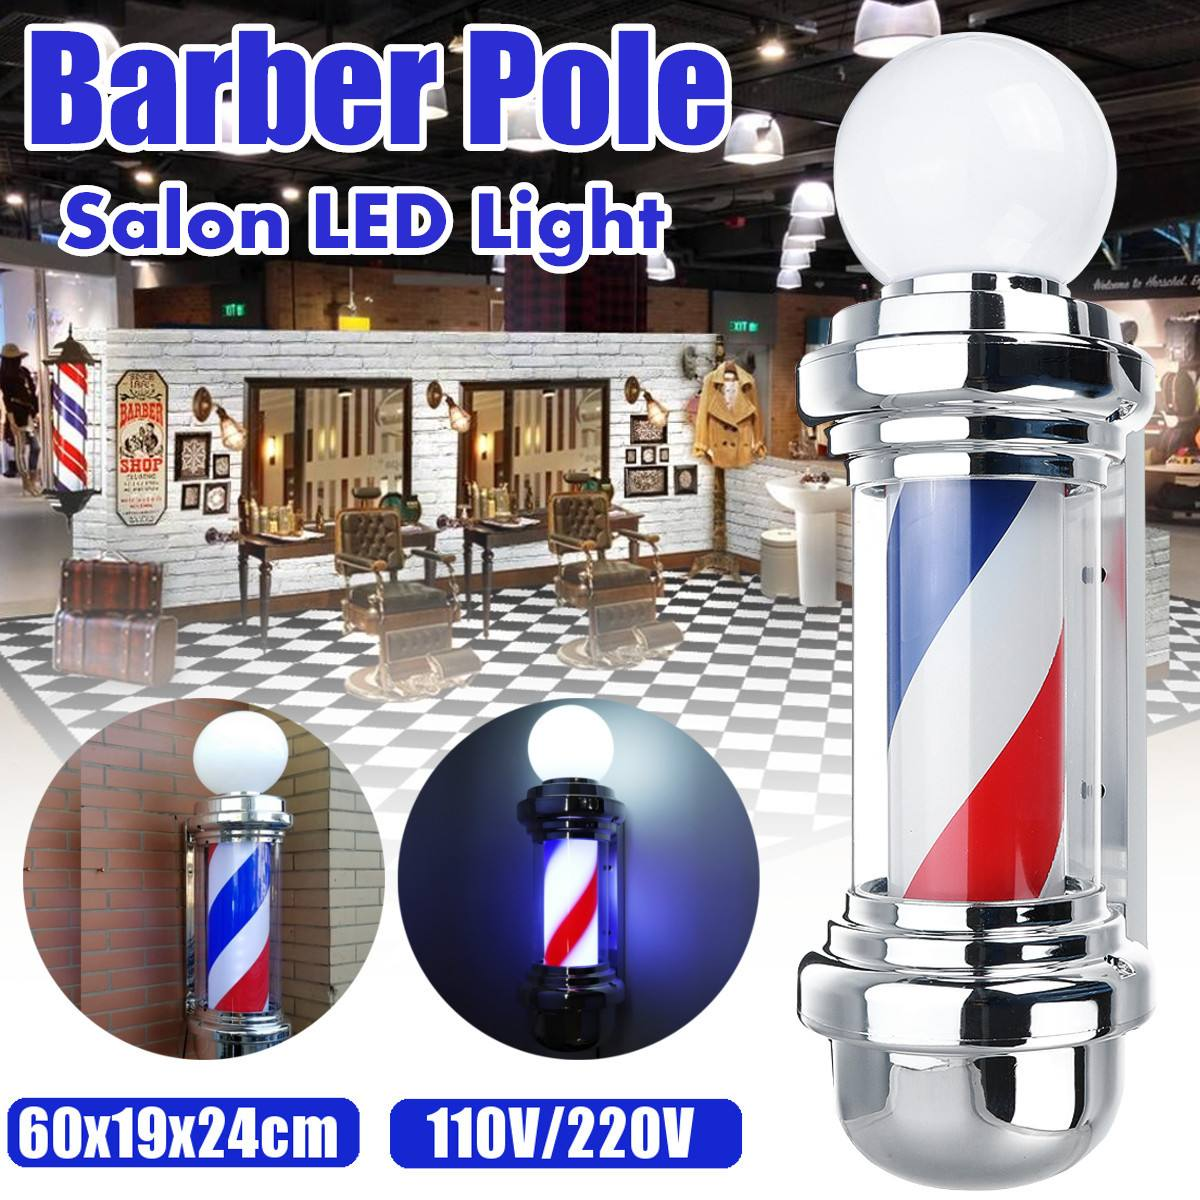 LED Barber Shop Sign Pole Light Red White Blue Stripe Design Roating Salon Wall Hanging Light Lamp Beauty Salon Lamp